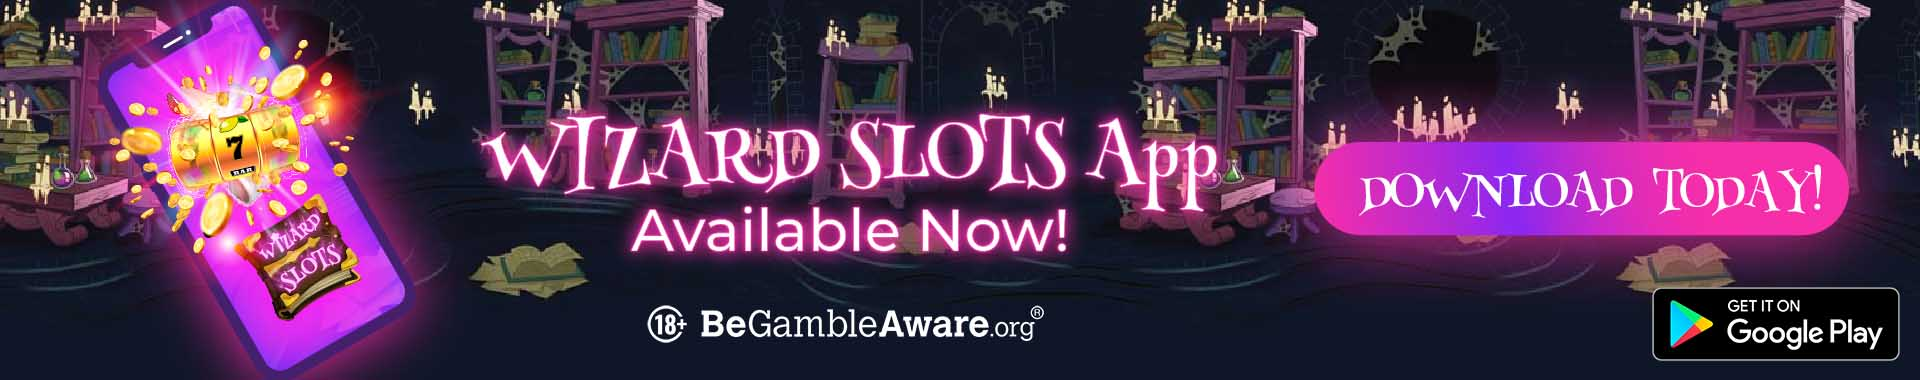 Wizard Mobile Best Online Slots App